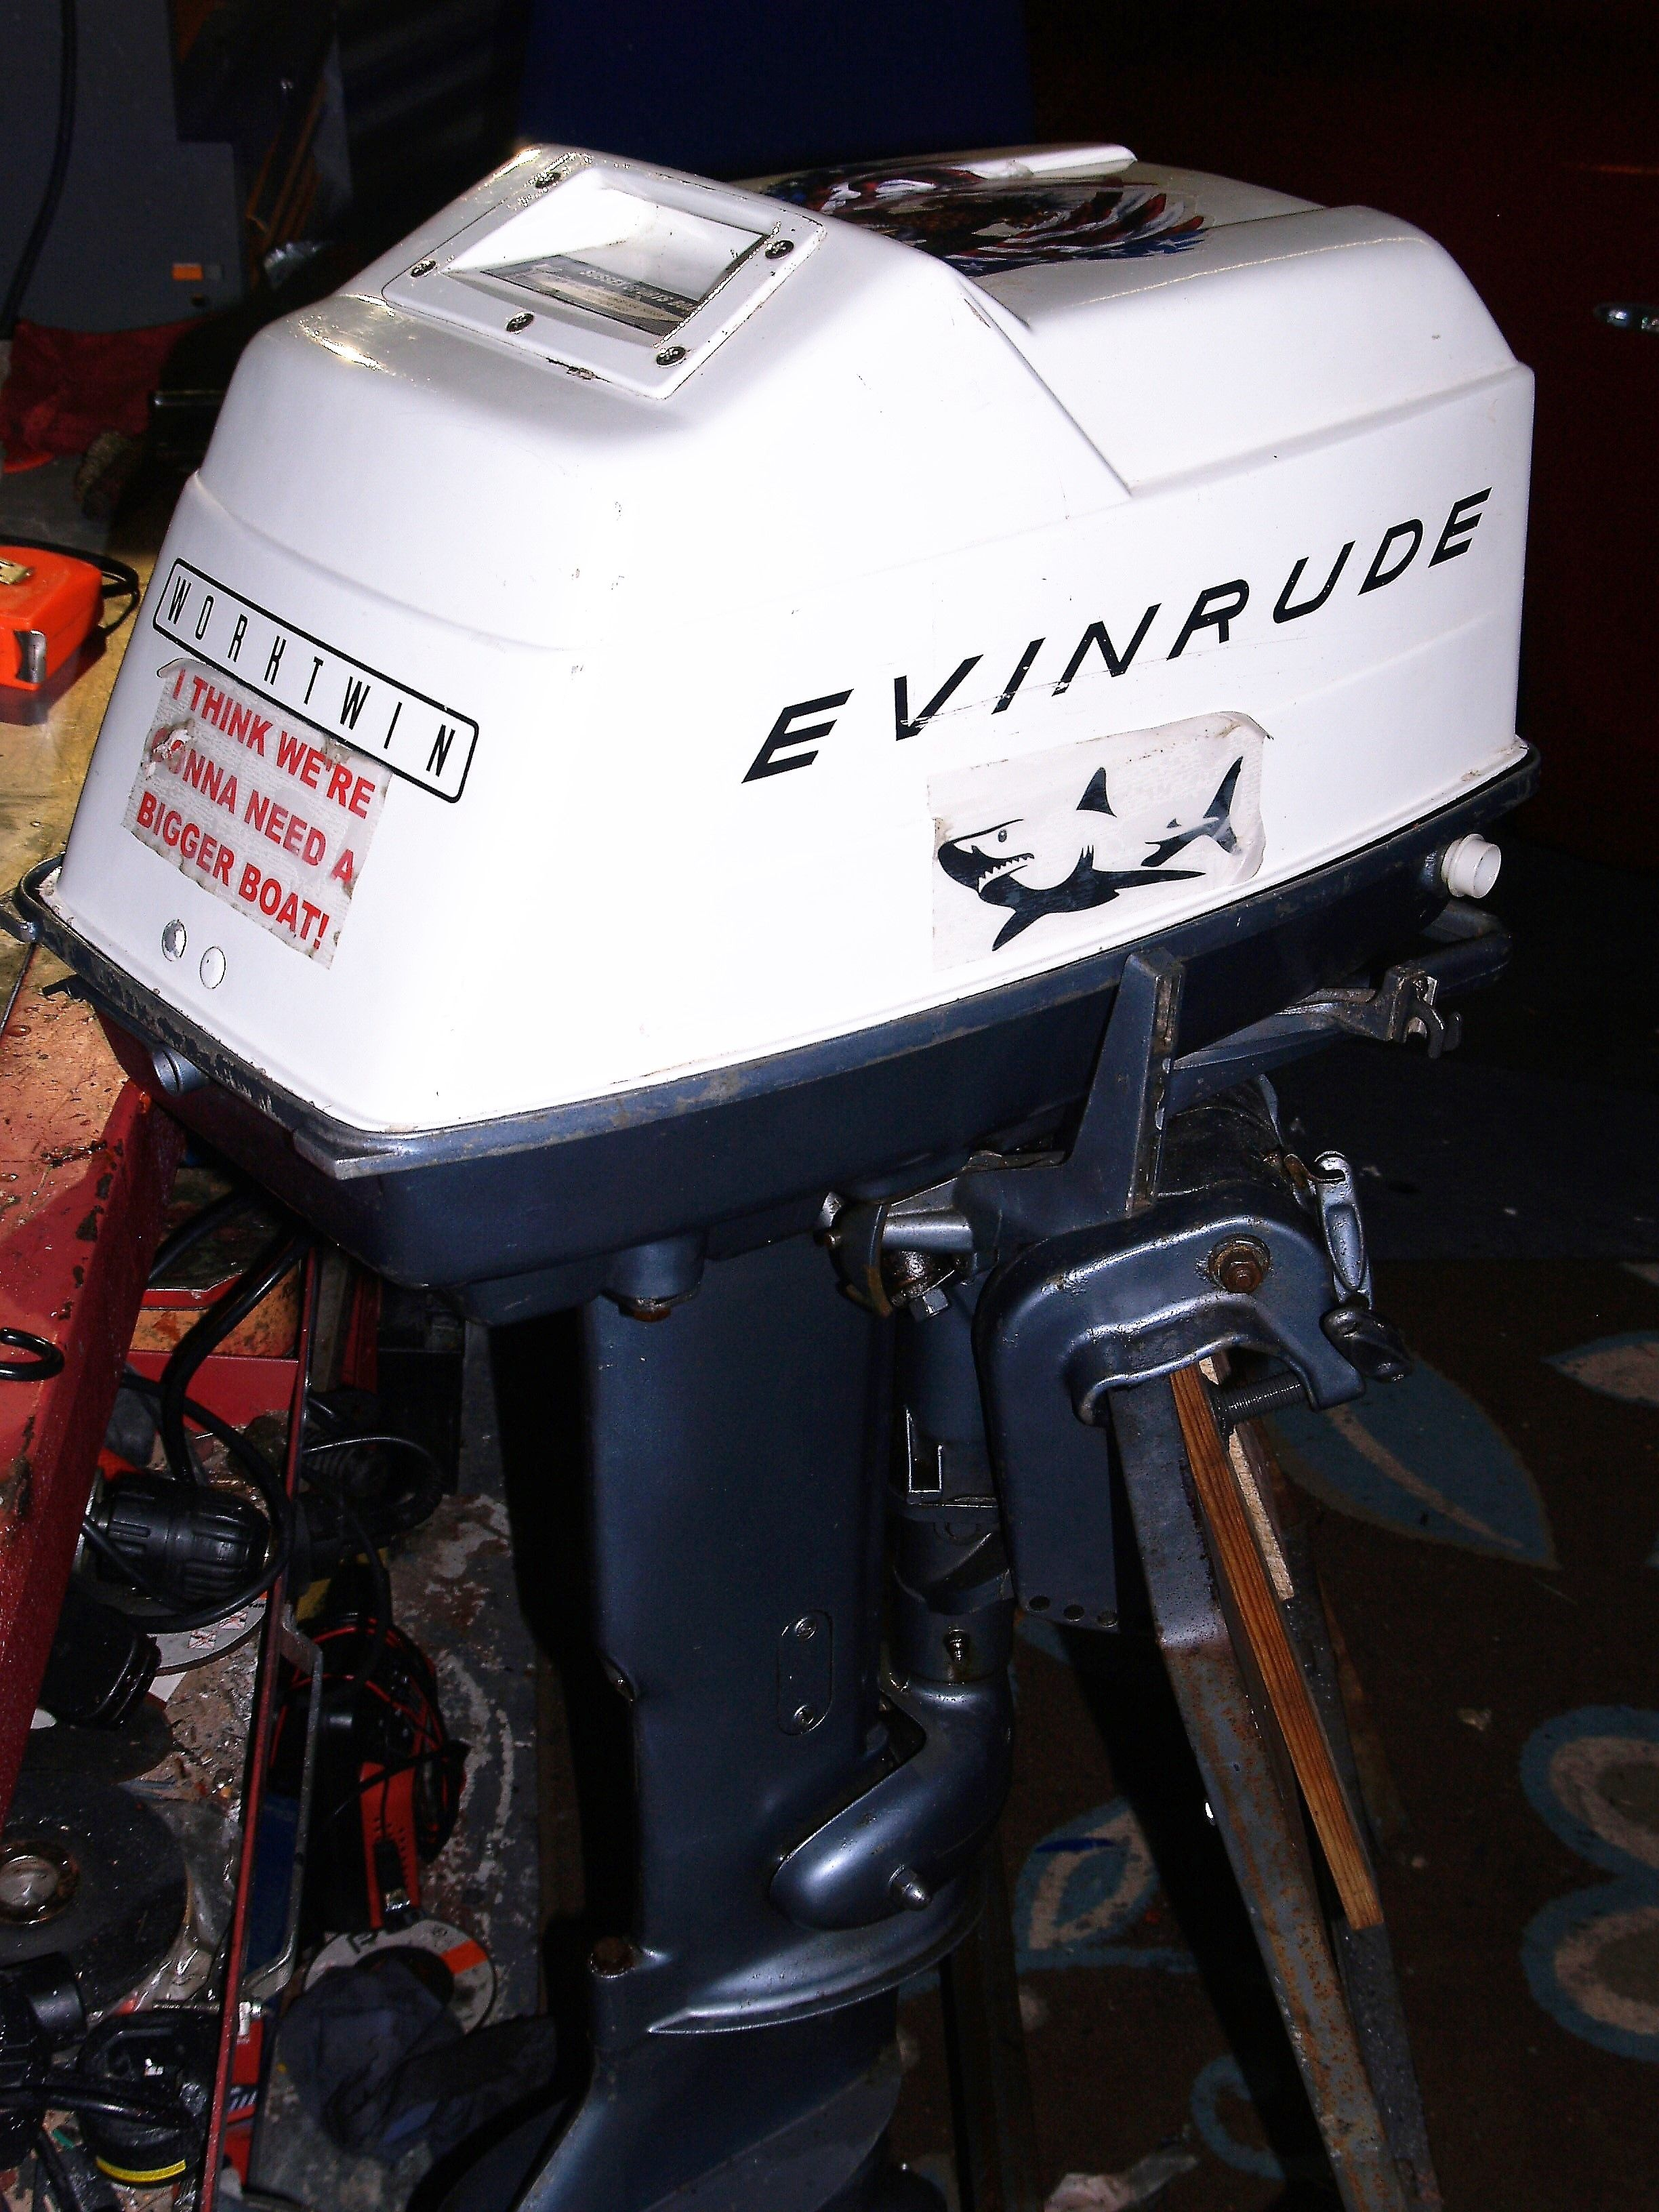 medium resolution of its a 15503c 15hp evinrude worktwin year i don t really know anyone know